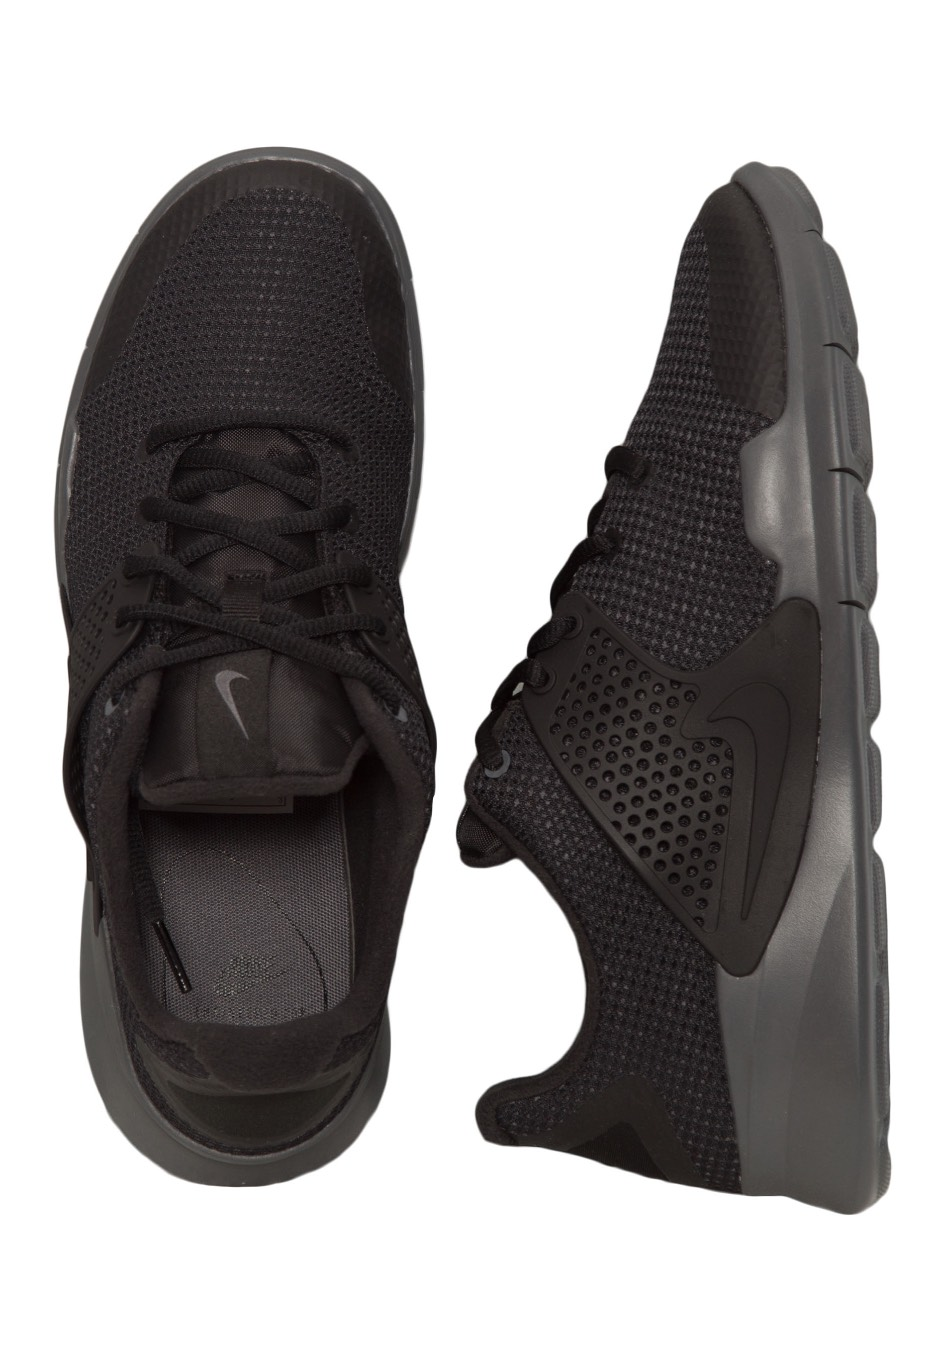 half off 853a5 46d75 Nike - Arrowz SE Black Black Dark Grey - Shoes - Impericon.com Worldwide